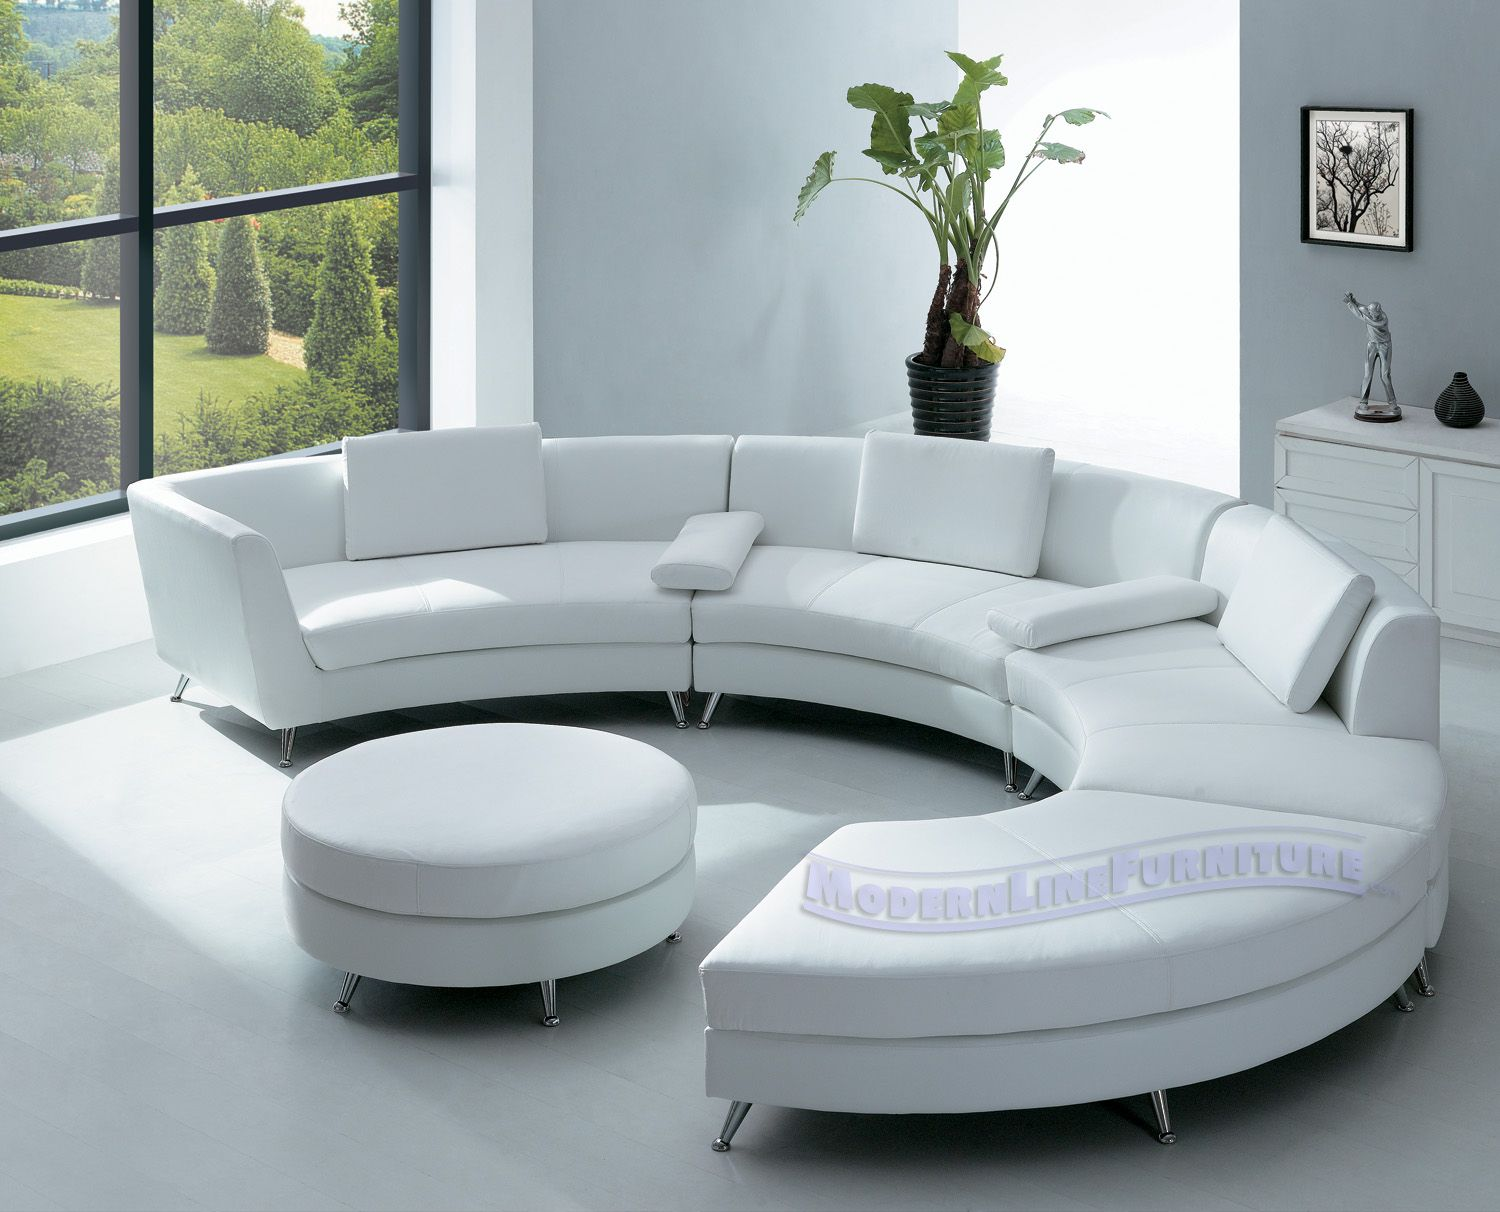 Room Room furniture with elegant half circle sofa